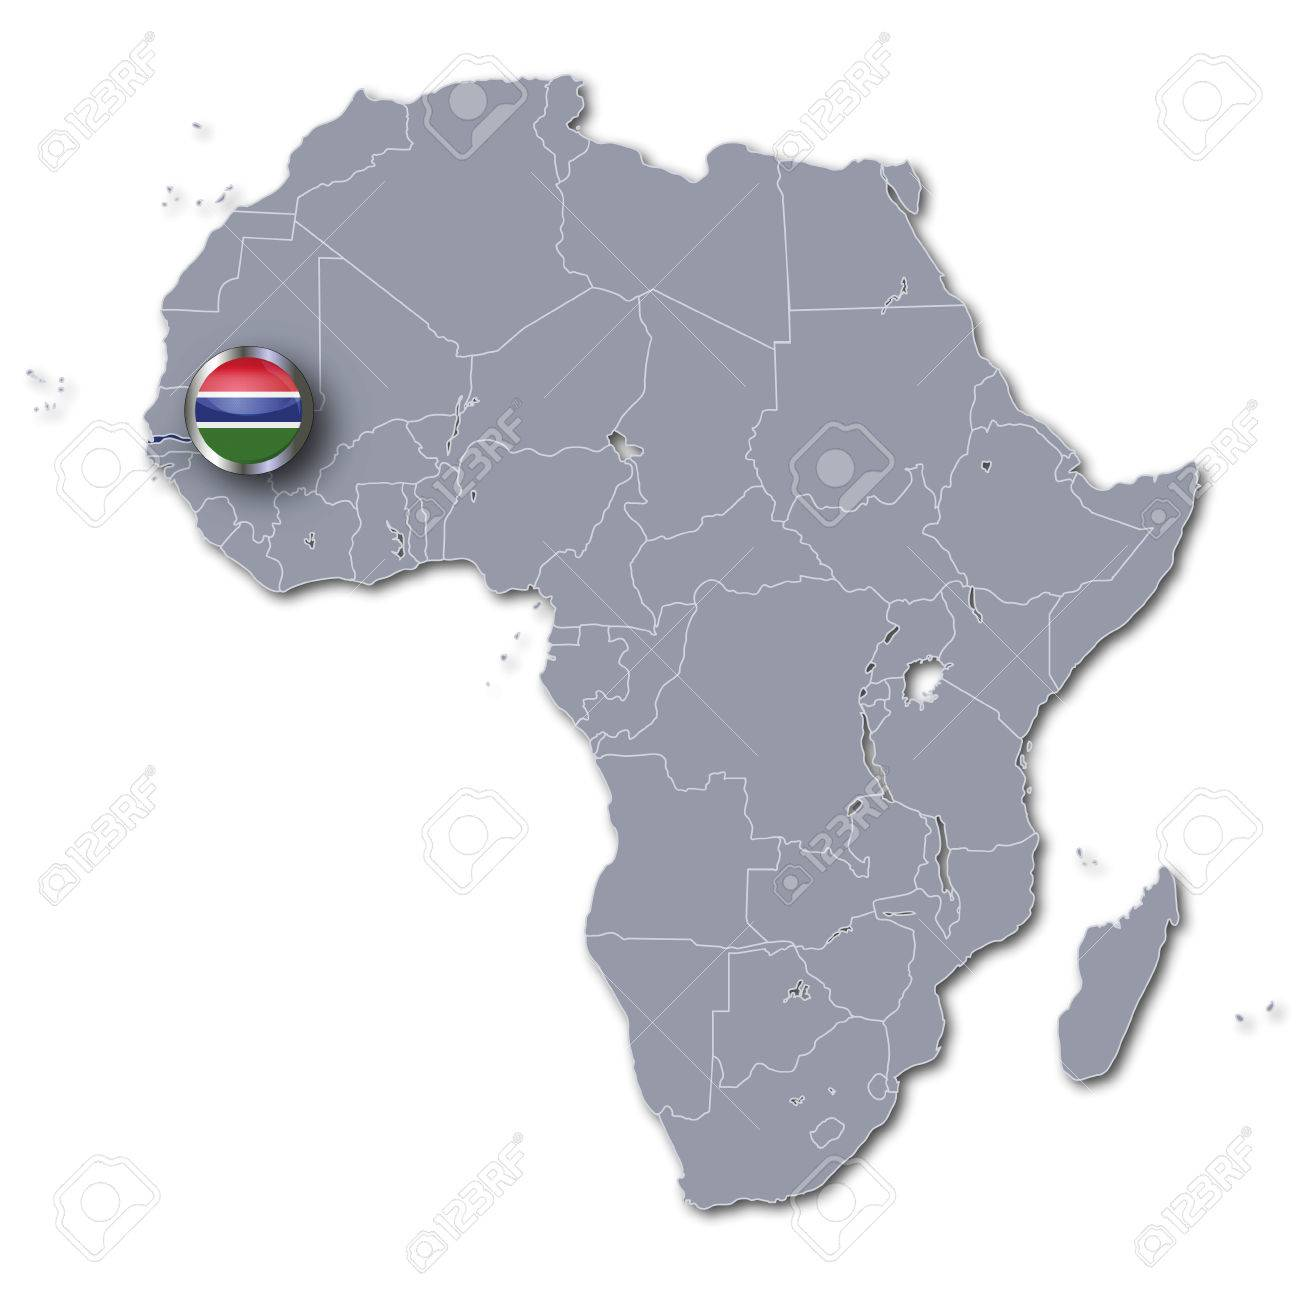 Gambia On Africa Map.Africa Map With Gambia Stock Photo Picture And Royalty Free Image